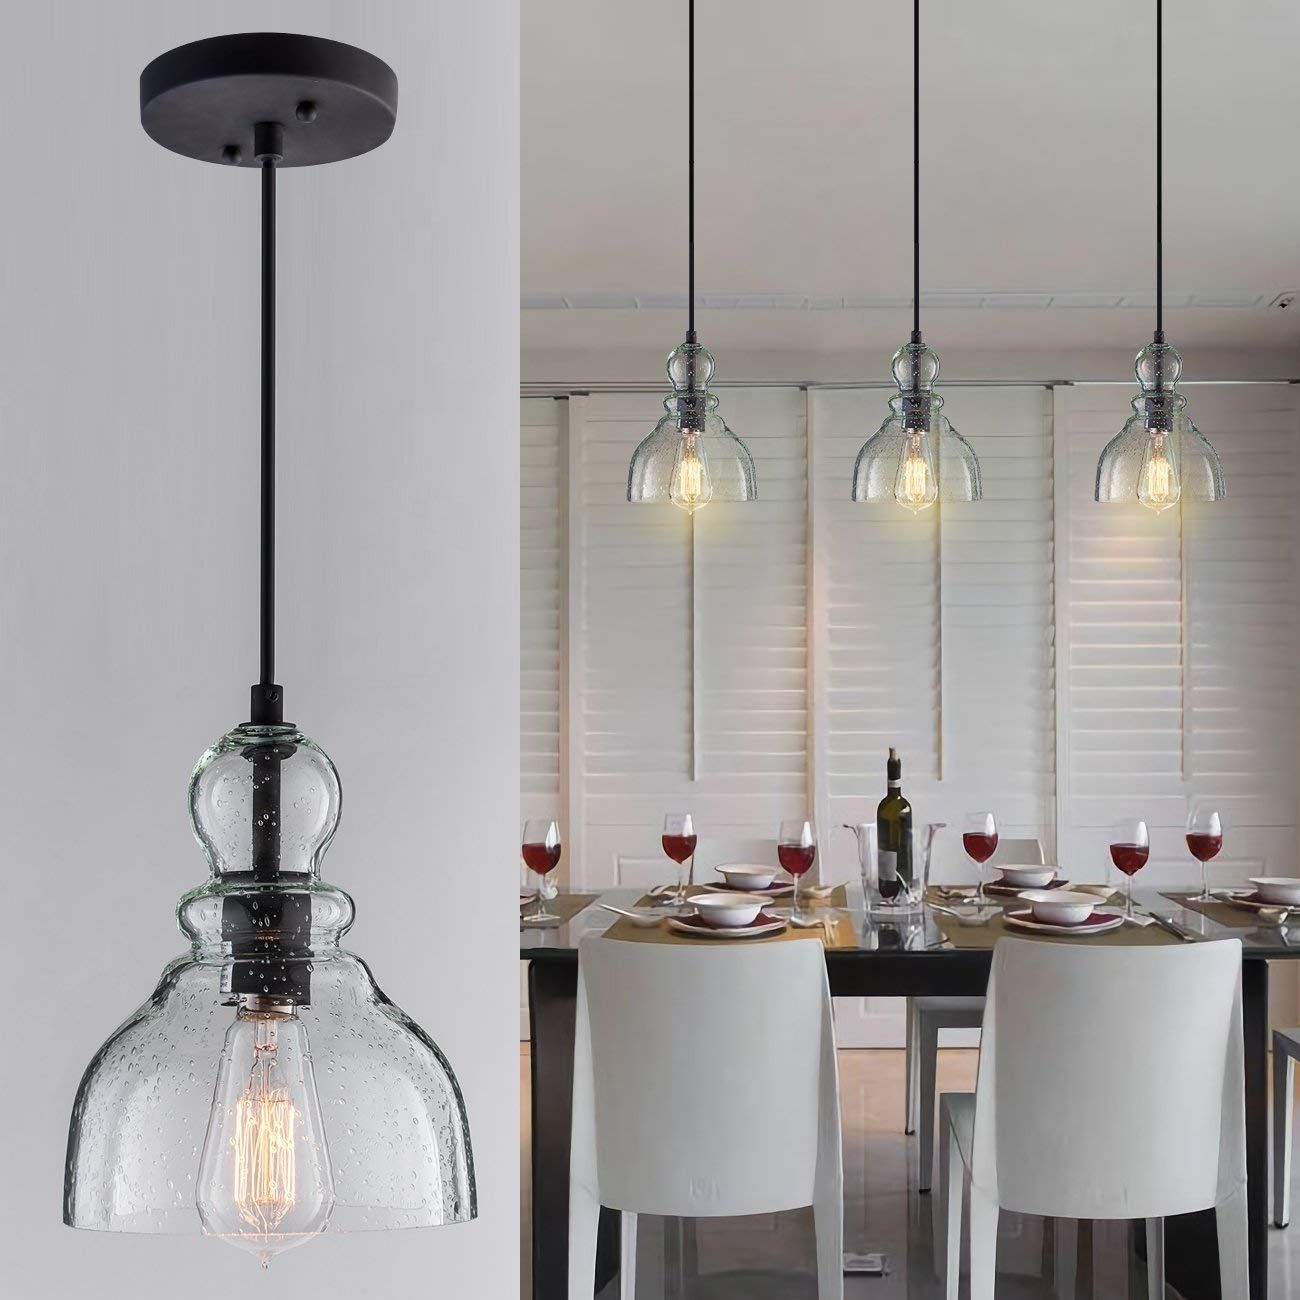 Donglaimei Industrial Mini Pendant Lighting With Handblown Clear